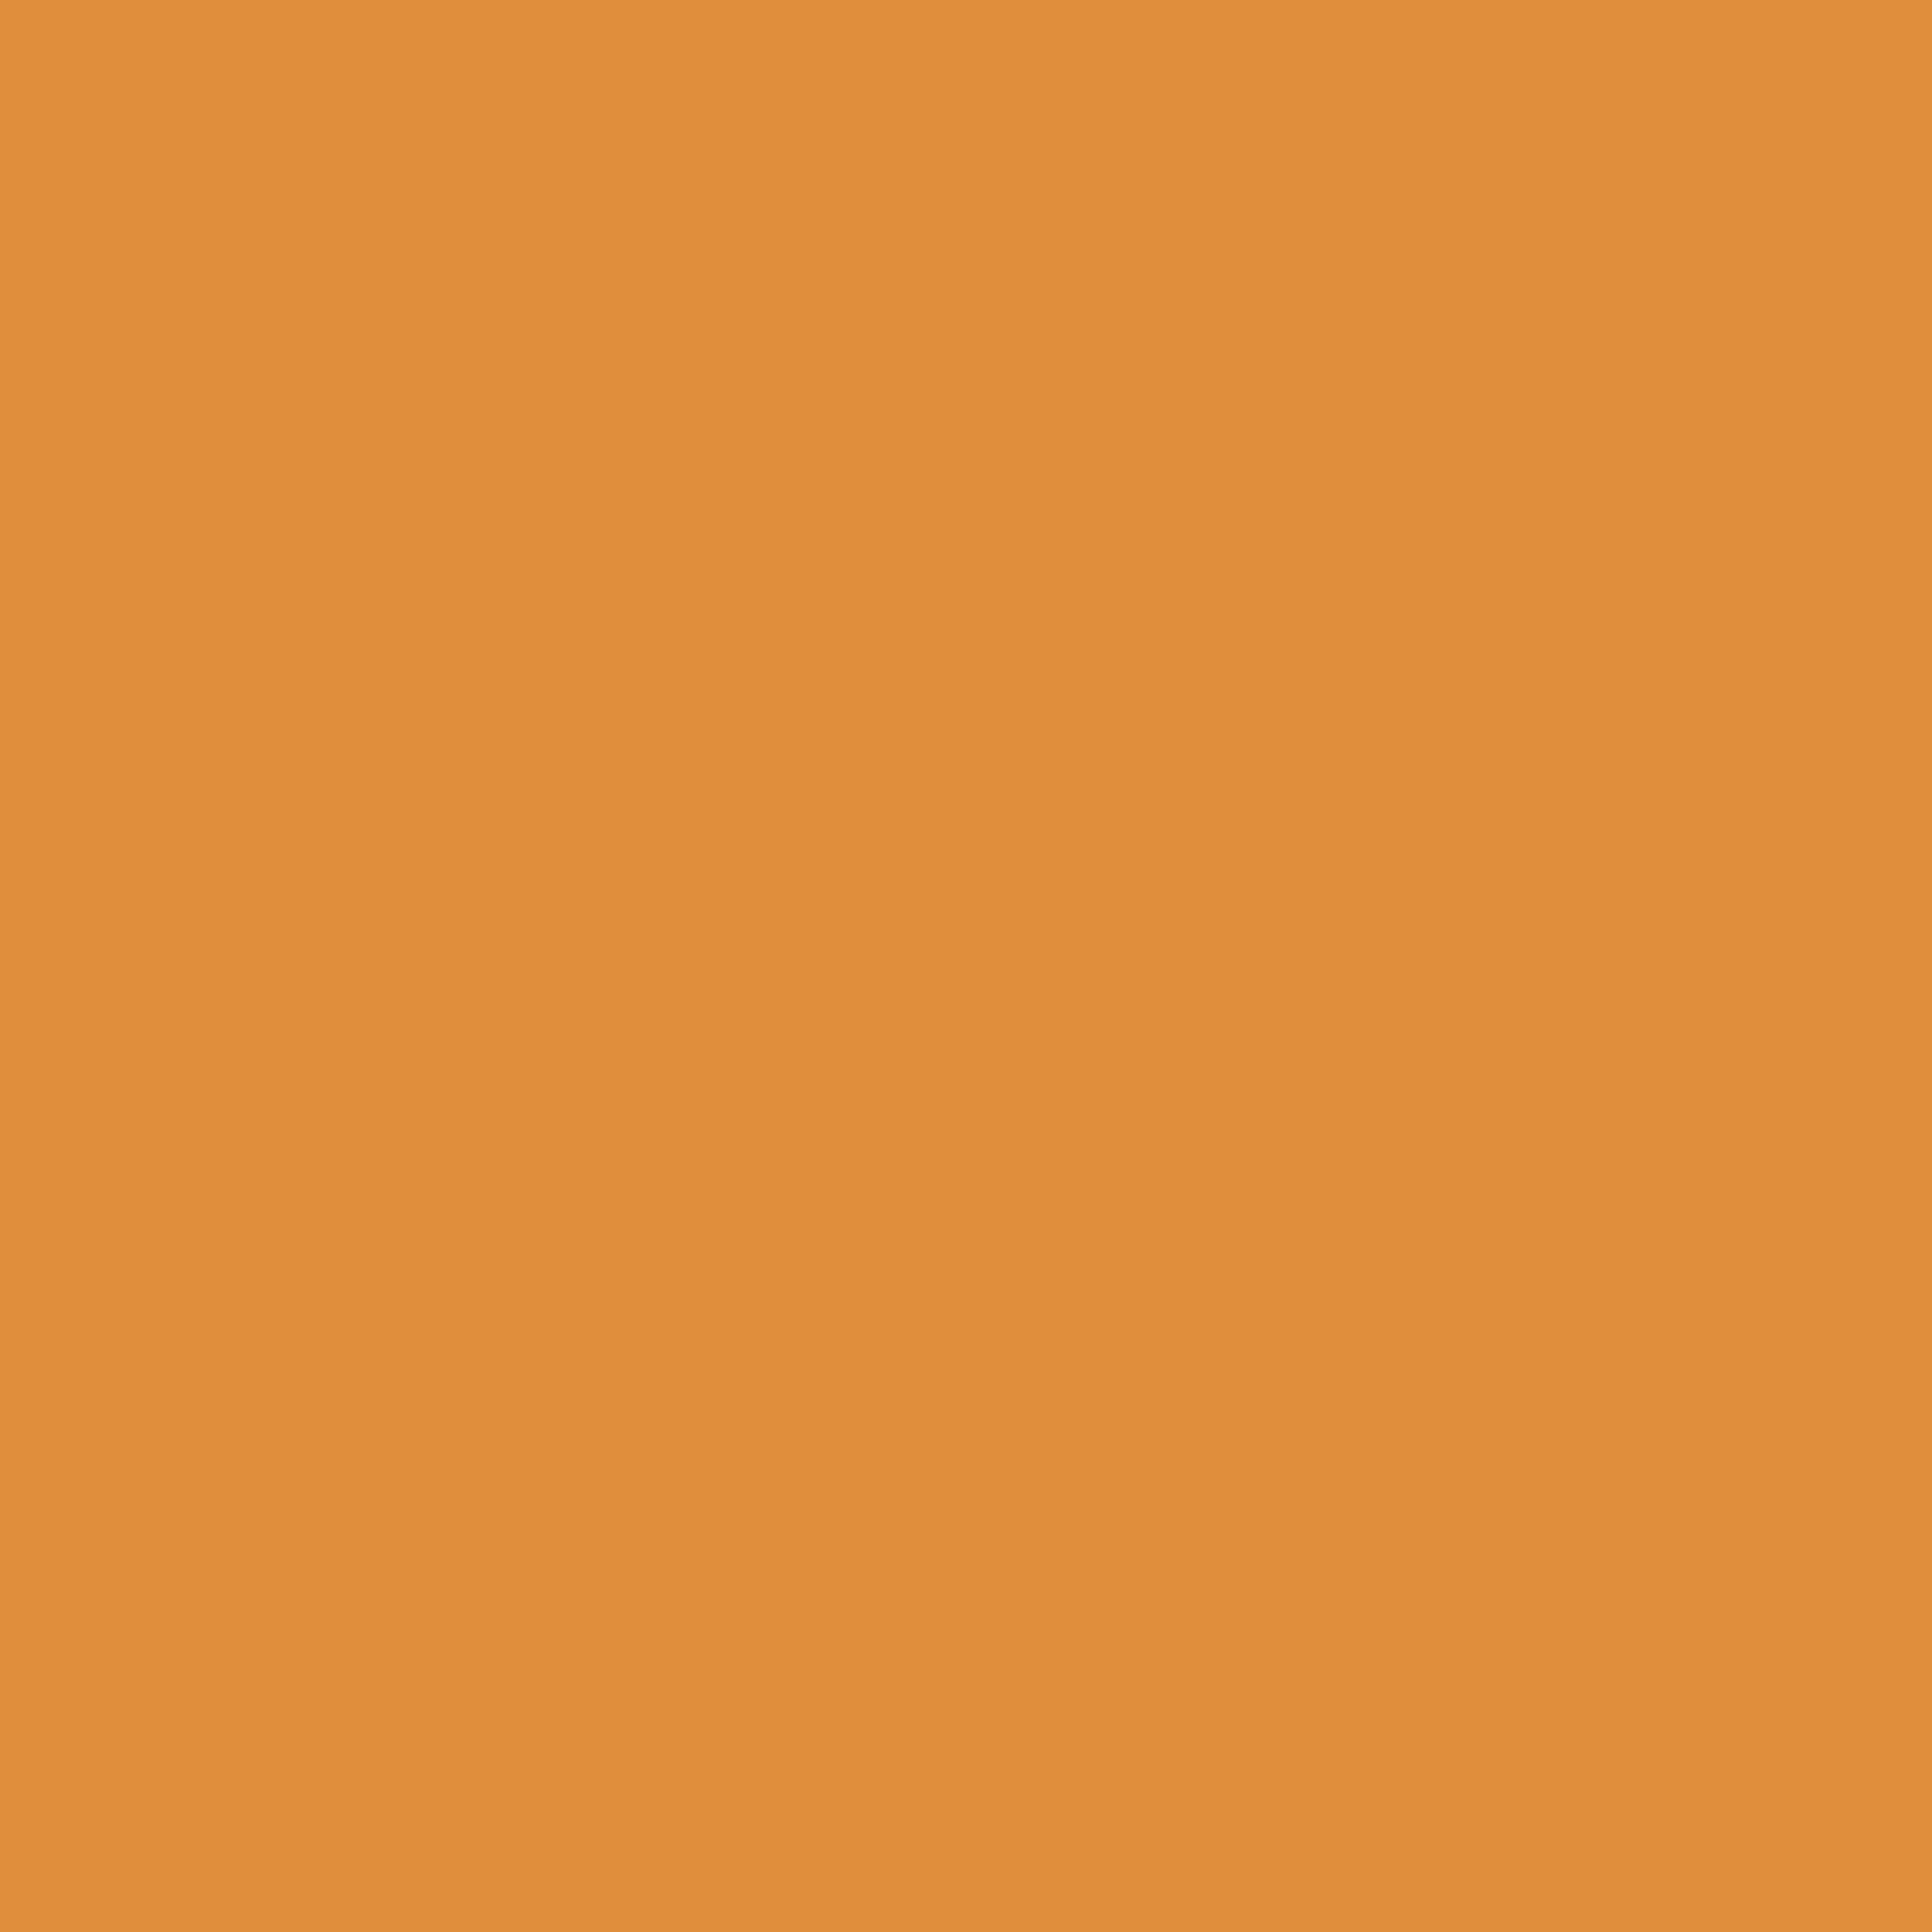 2048x2048 Tigers Eye Solid Color Background